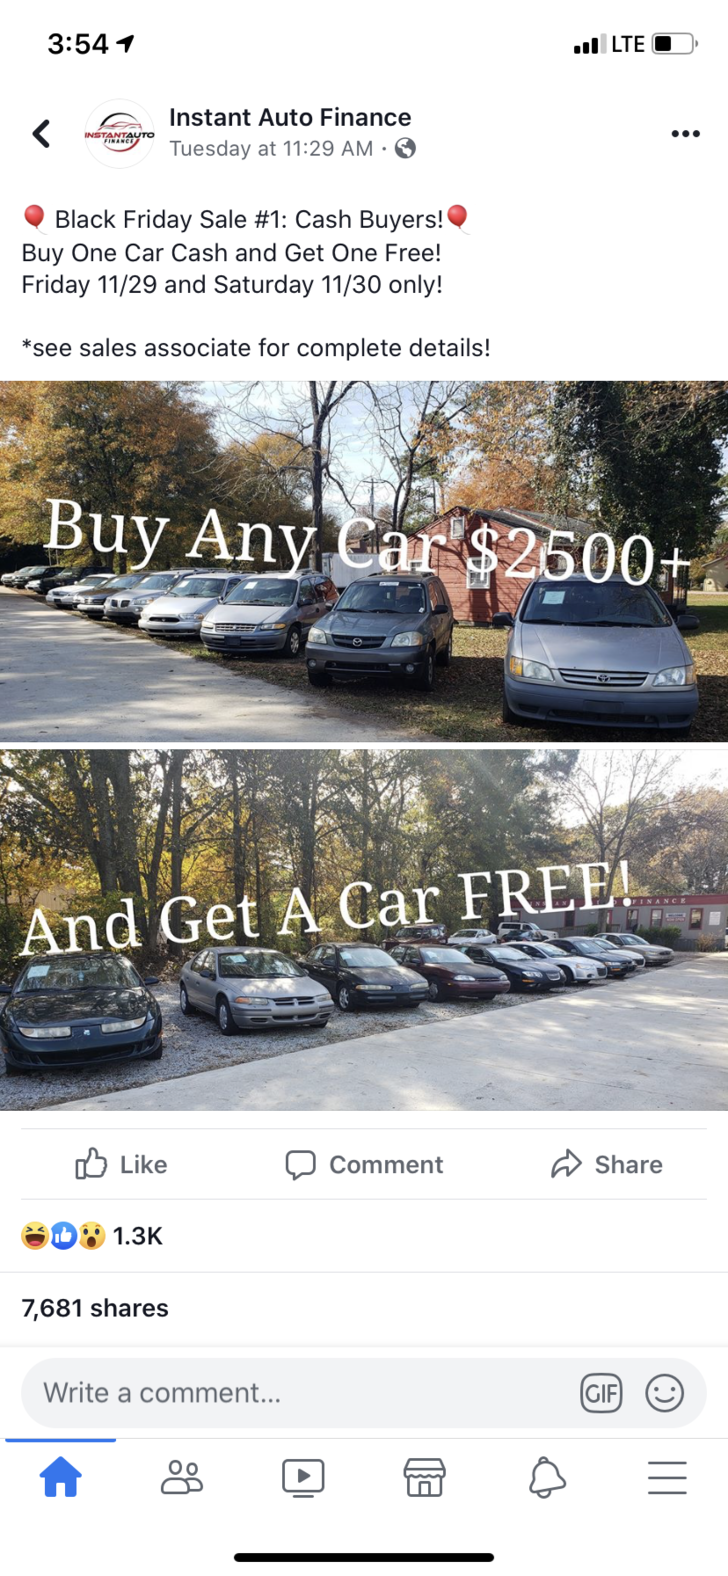 Motor vehicle - 3:54 LTEO Instant Auto Finance < INSTANTAUTO NANCY Tuesday at 11:29 AM Black Friday Sale #1: Cash Buyers! Buy One Car Cash and Get One Free! Friday 11/29 and Saturday 11/30 only! *see sales associate for complete details! Buy Any Car $2600+ And Get A Car FREEA !ל Like Comment Share 1.3K 7,681 shares Write a comment... GIF